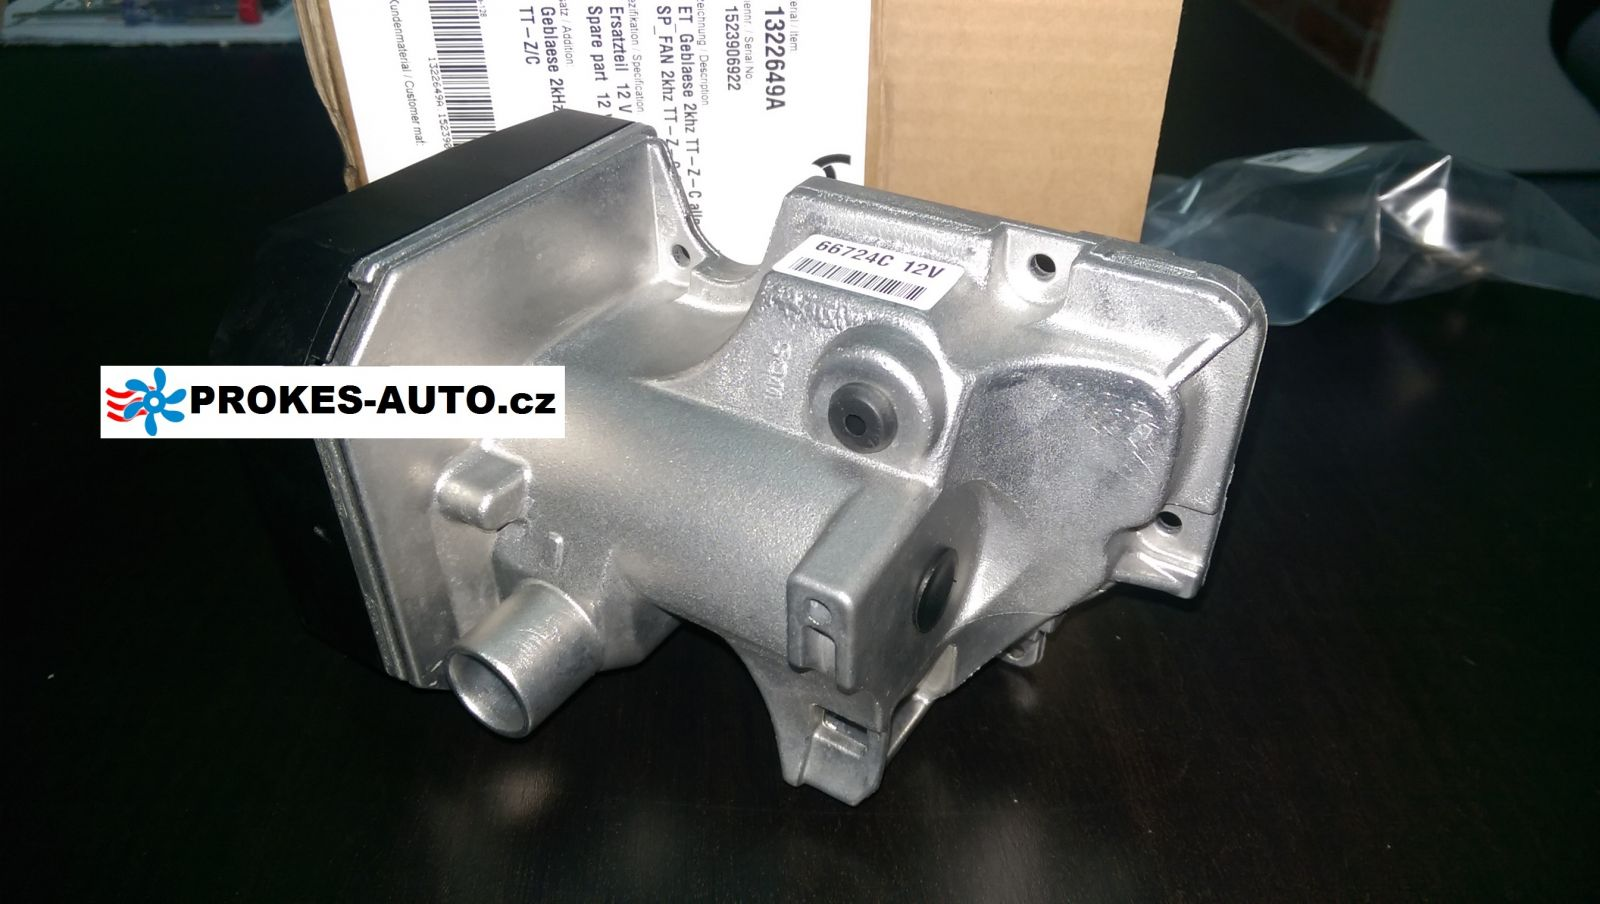 Combustion air blower auxiliary heater Thermo Top TT C / E / Z / P 9001383 / 1322649 / 91870 Webasto